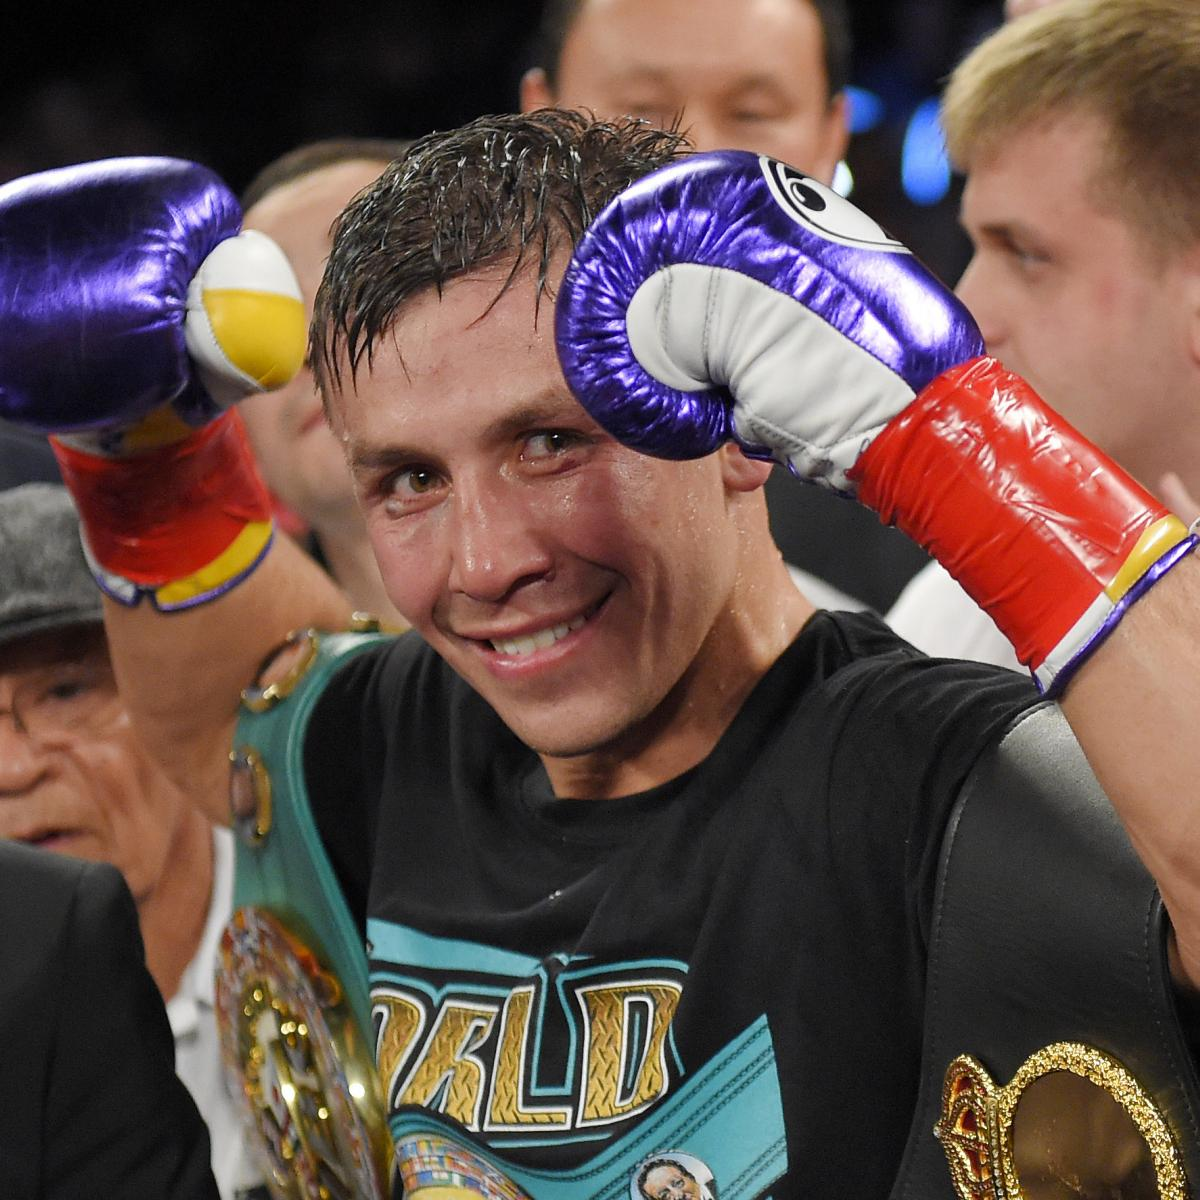 Gennady Golovkin: Could 'GGG' Be The Next Manny Pacquiao